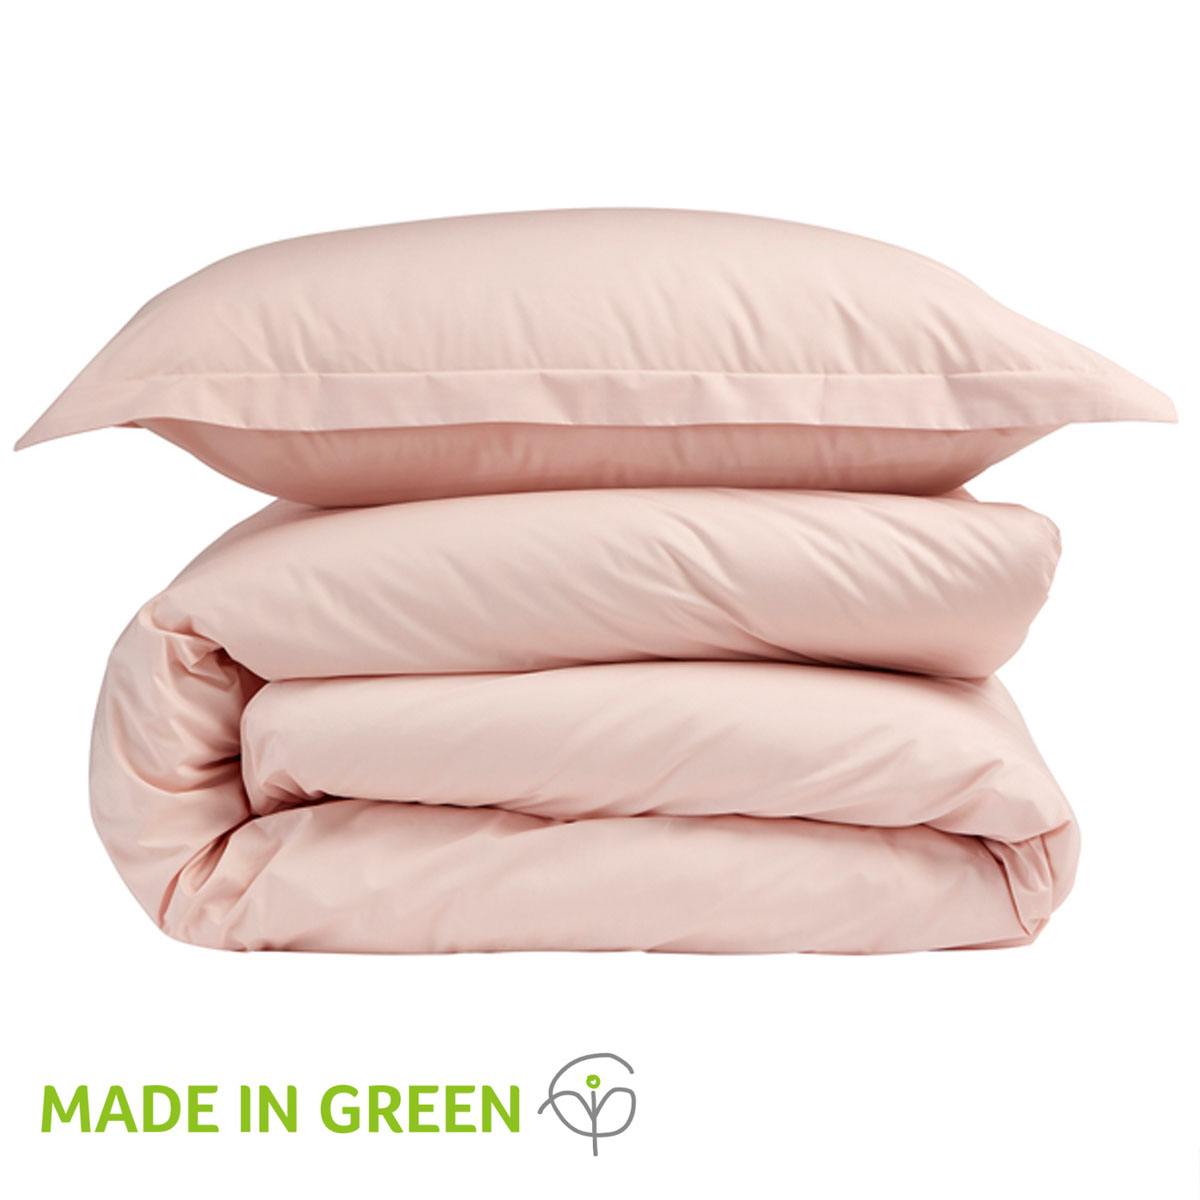 An image of 200 Easycare Double Fitted Sheet Blush